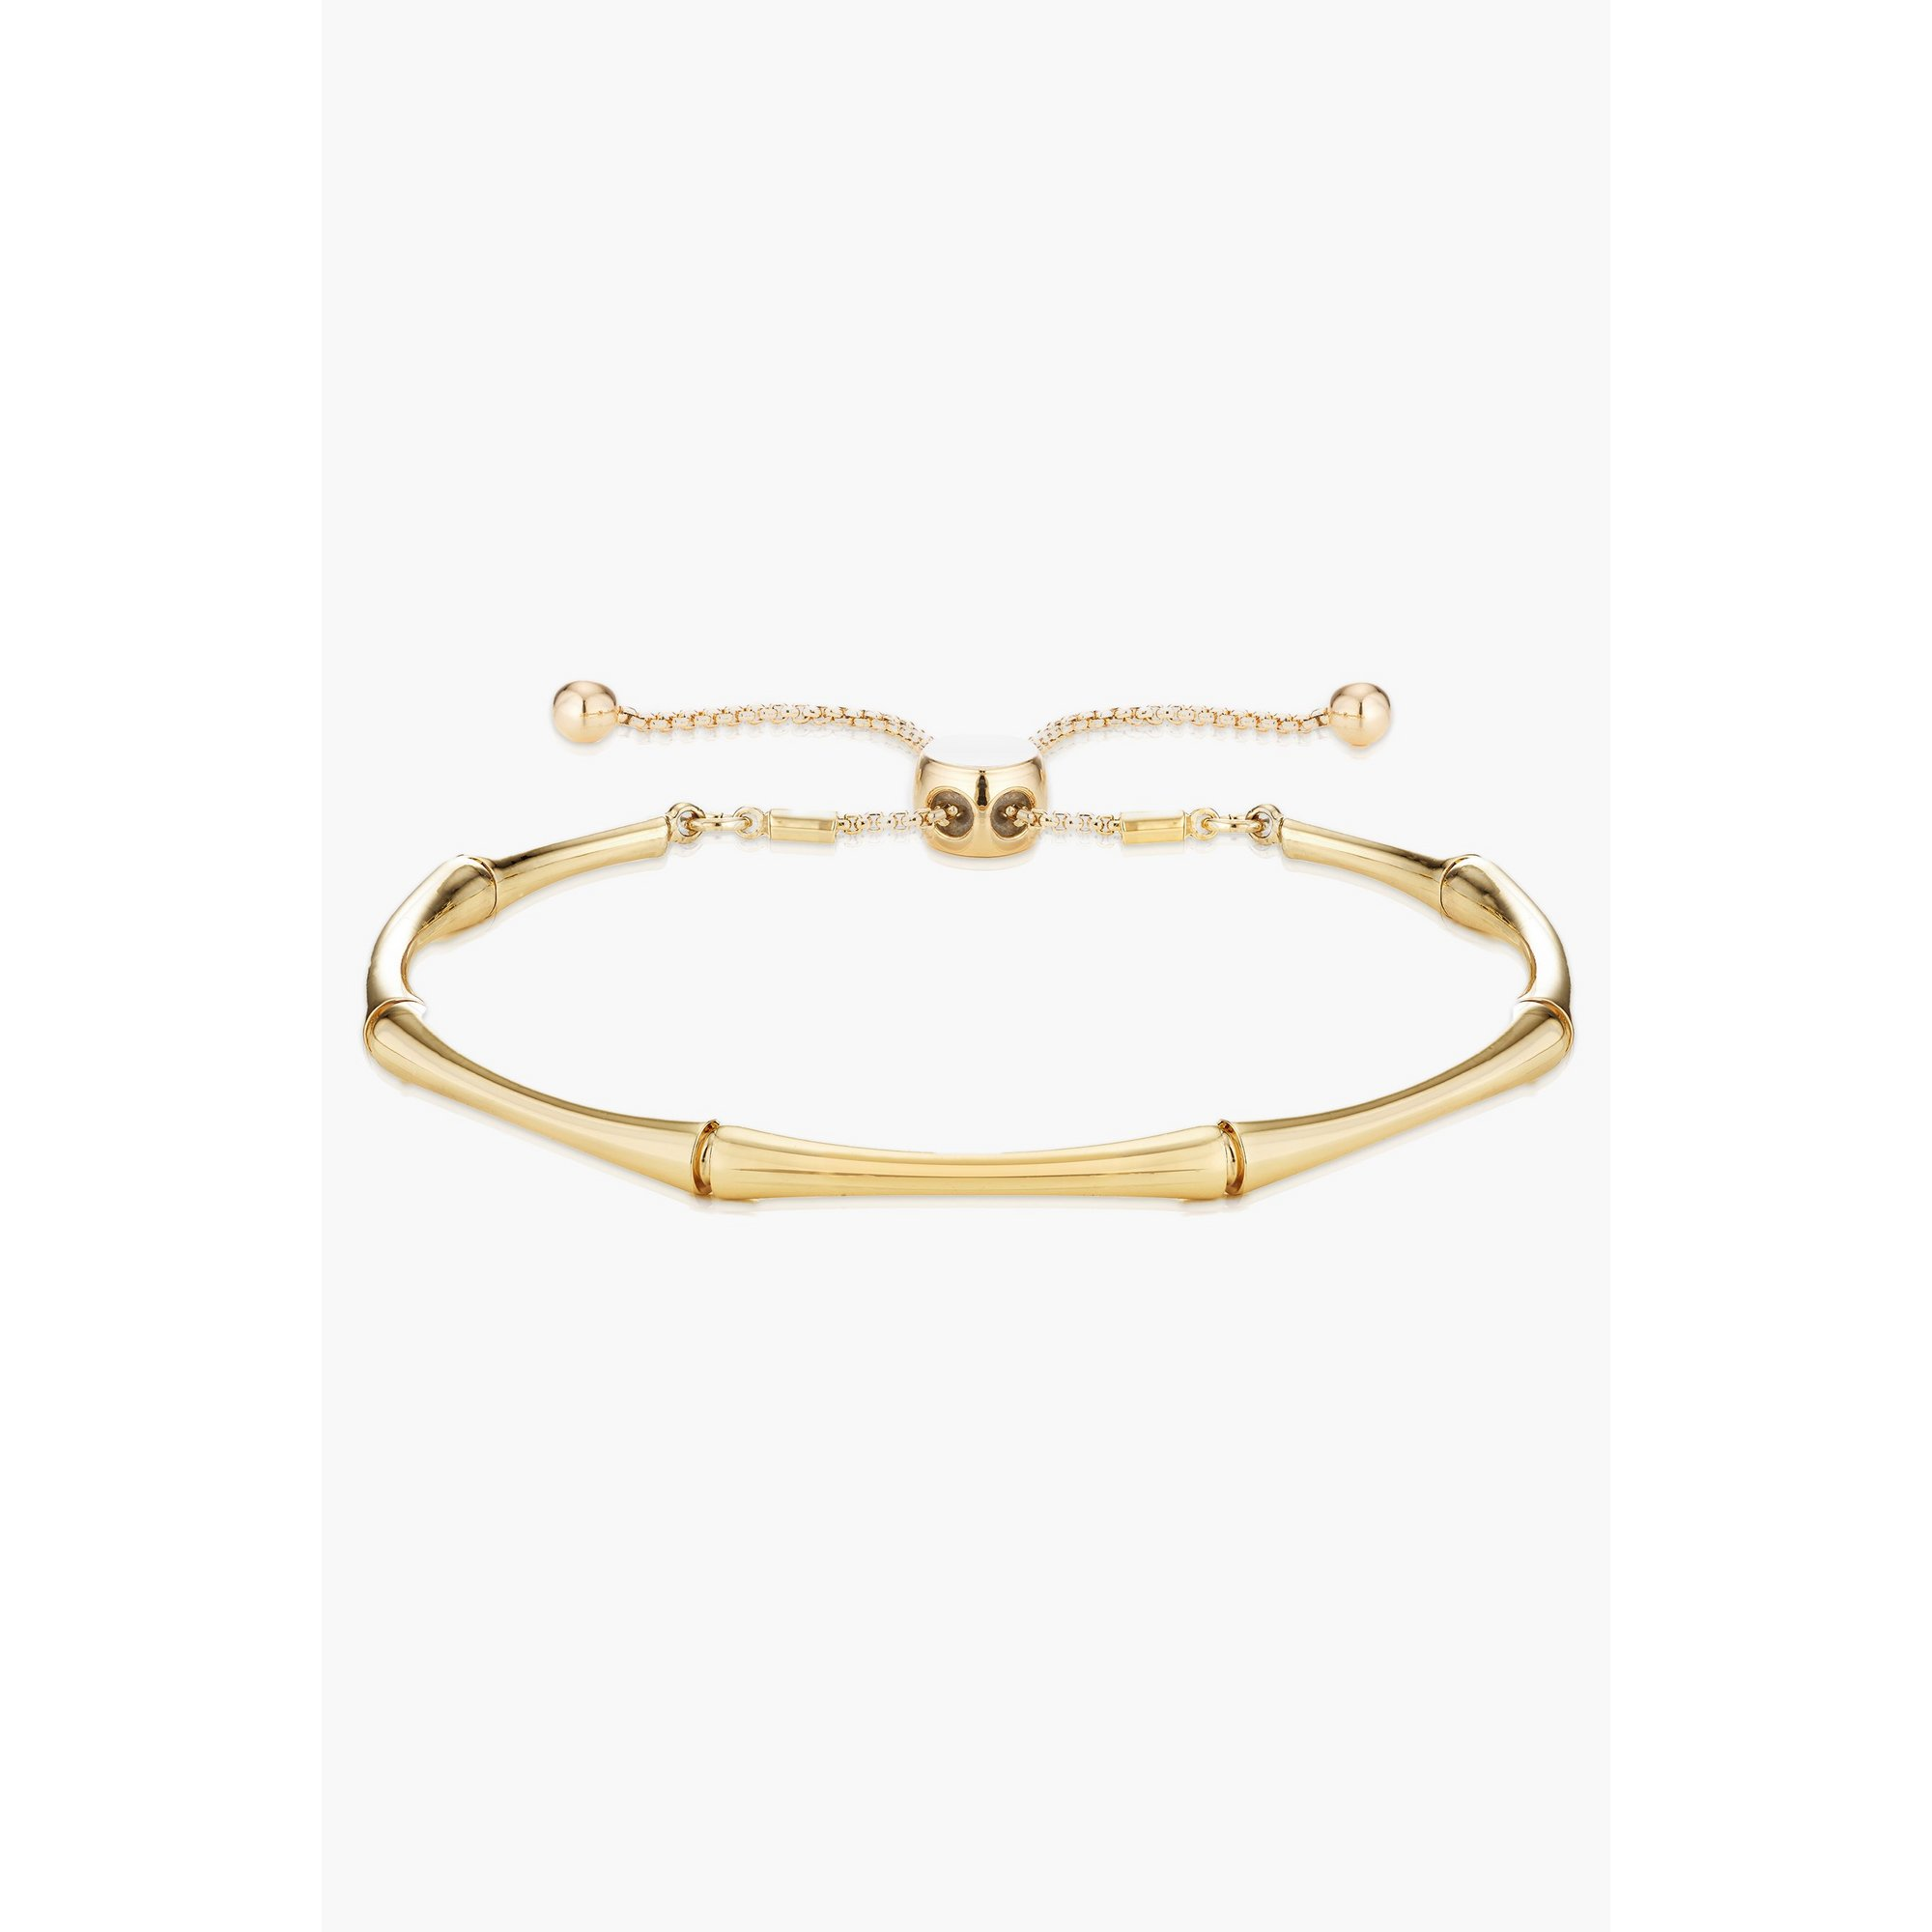 Image of Buckley London Bamboo Friendship Bangle